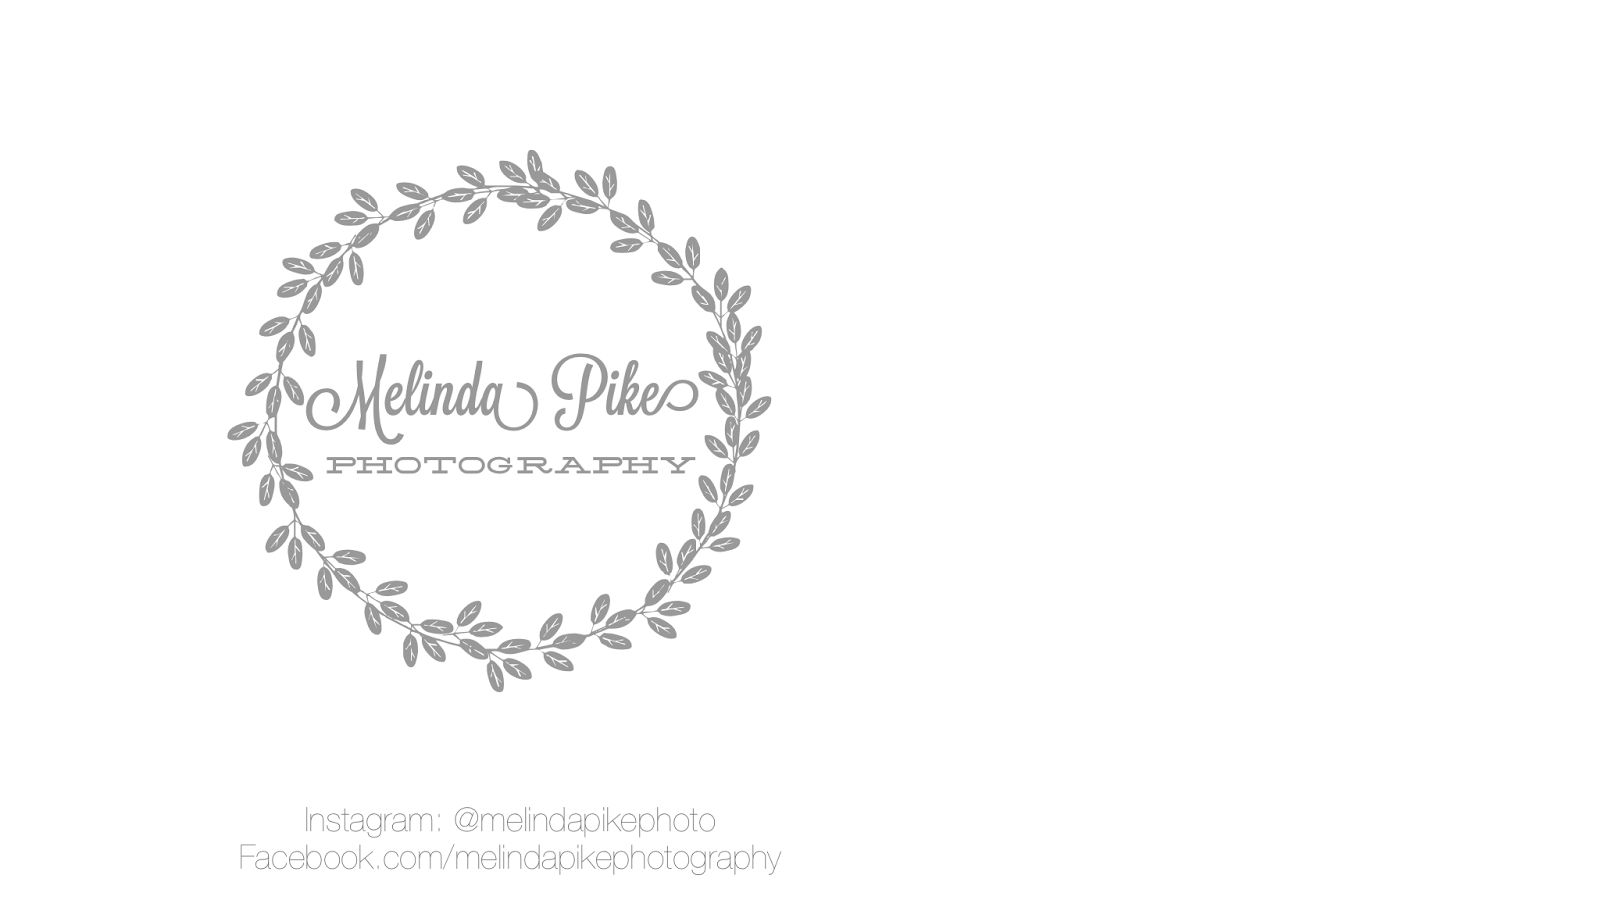 Melinda Pike Photography